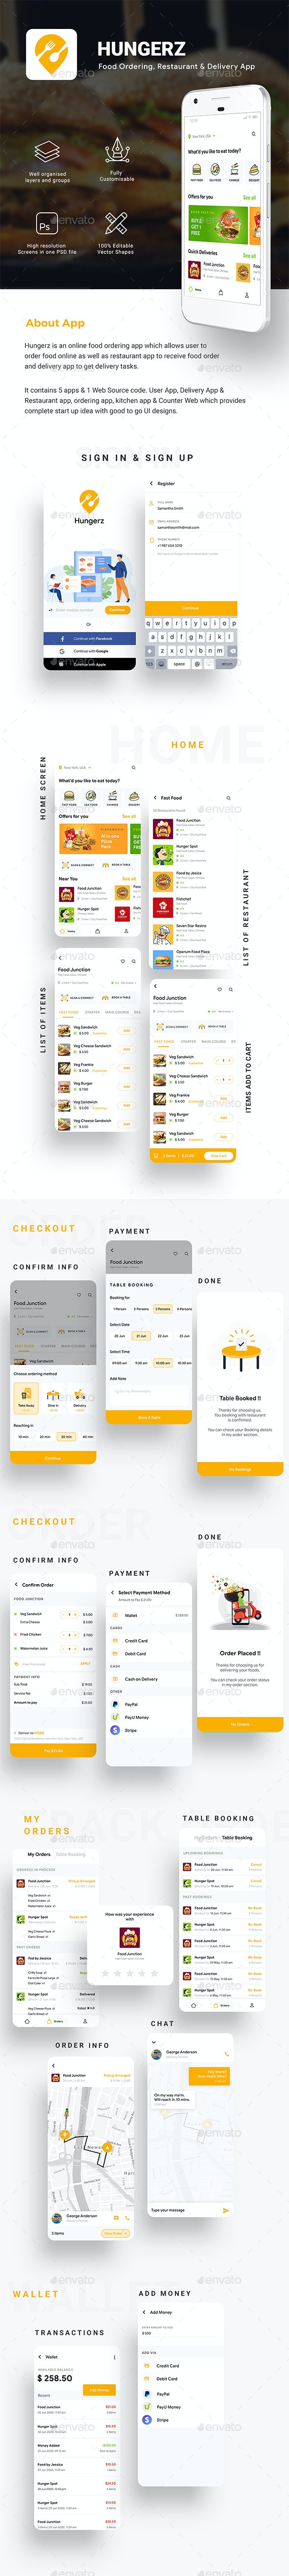 6 in 1 multi Restaurant Food Delivery App UI Kit | Hungerz - User Interfaces Web Elements